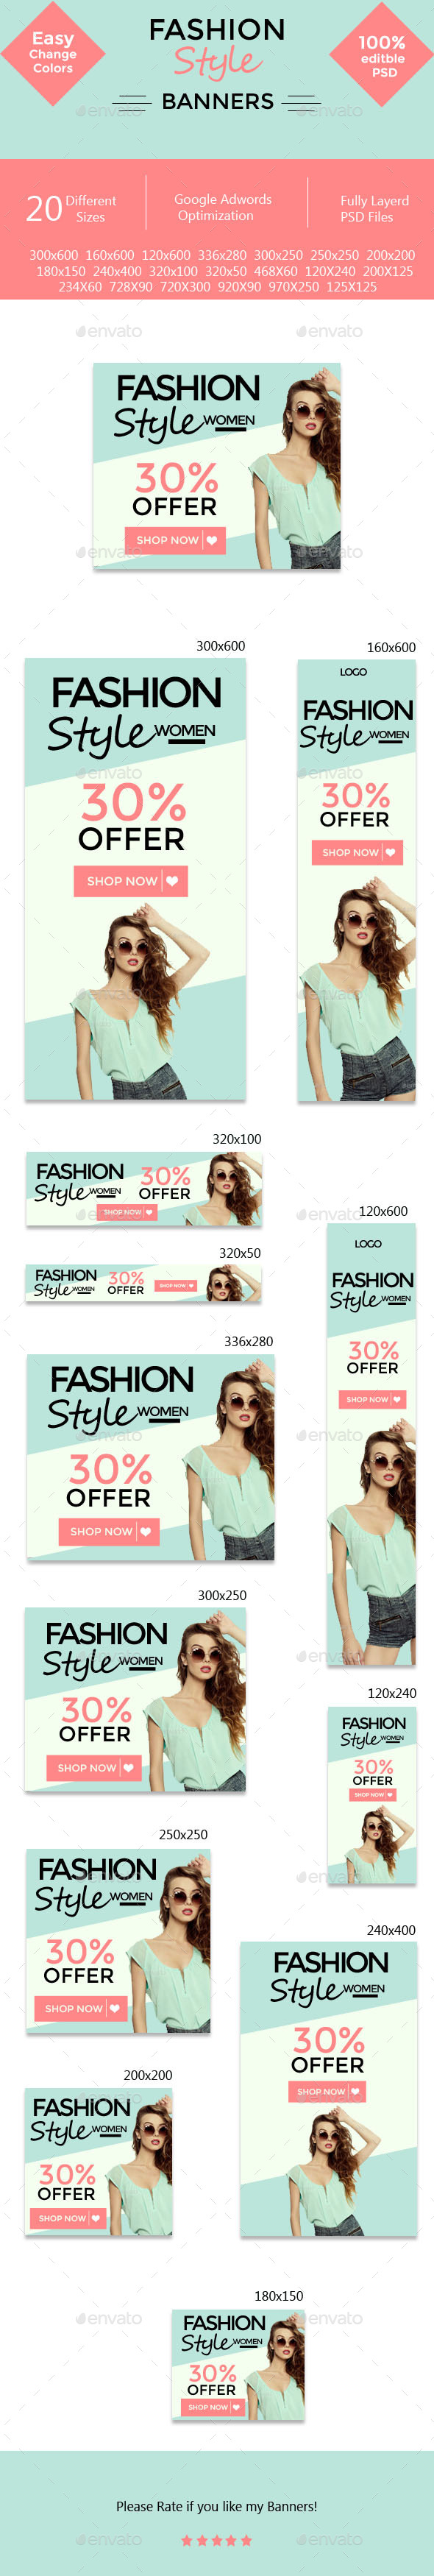 GraphicRiver Fashion Style Banners 11322292